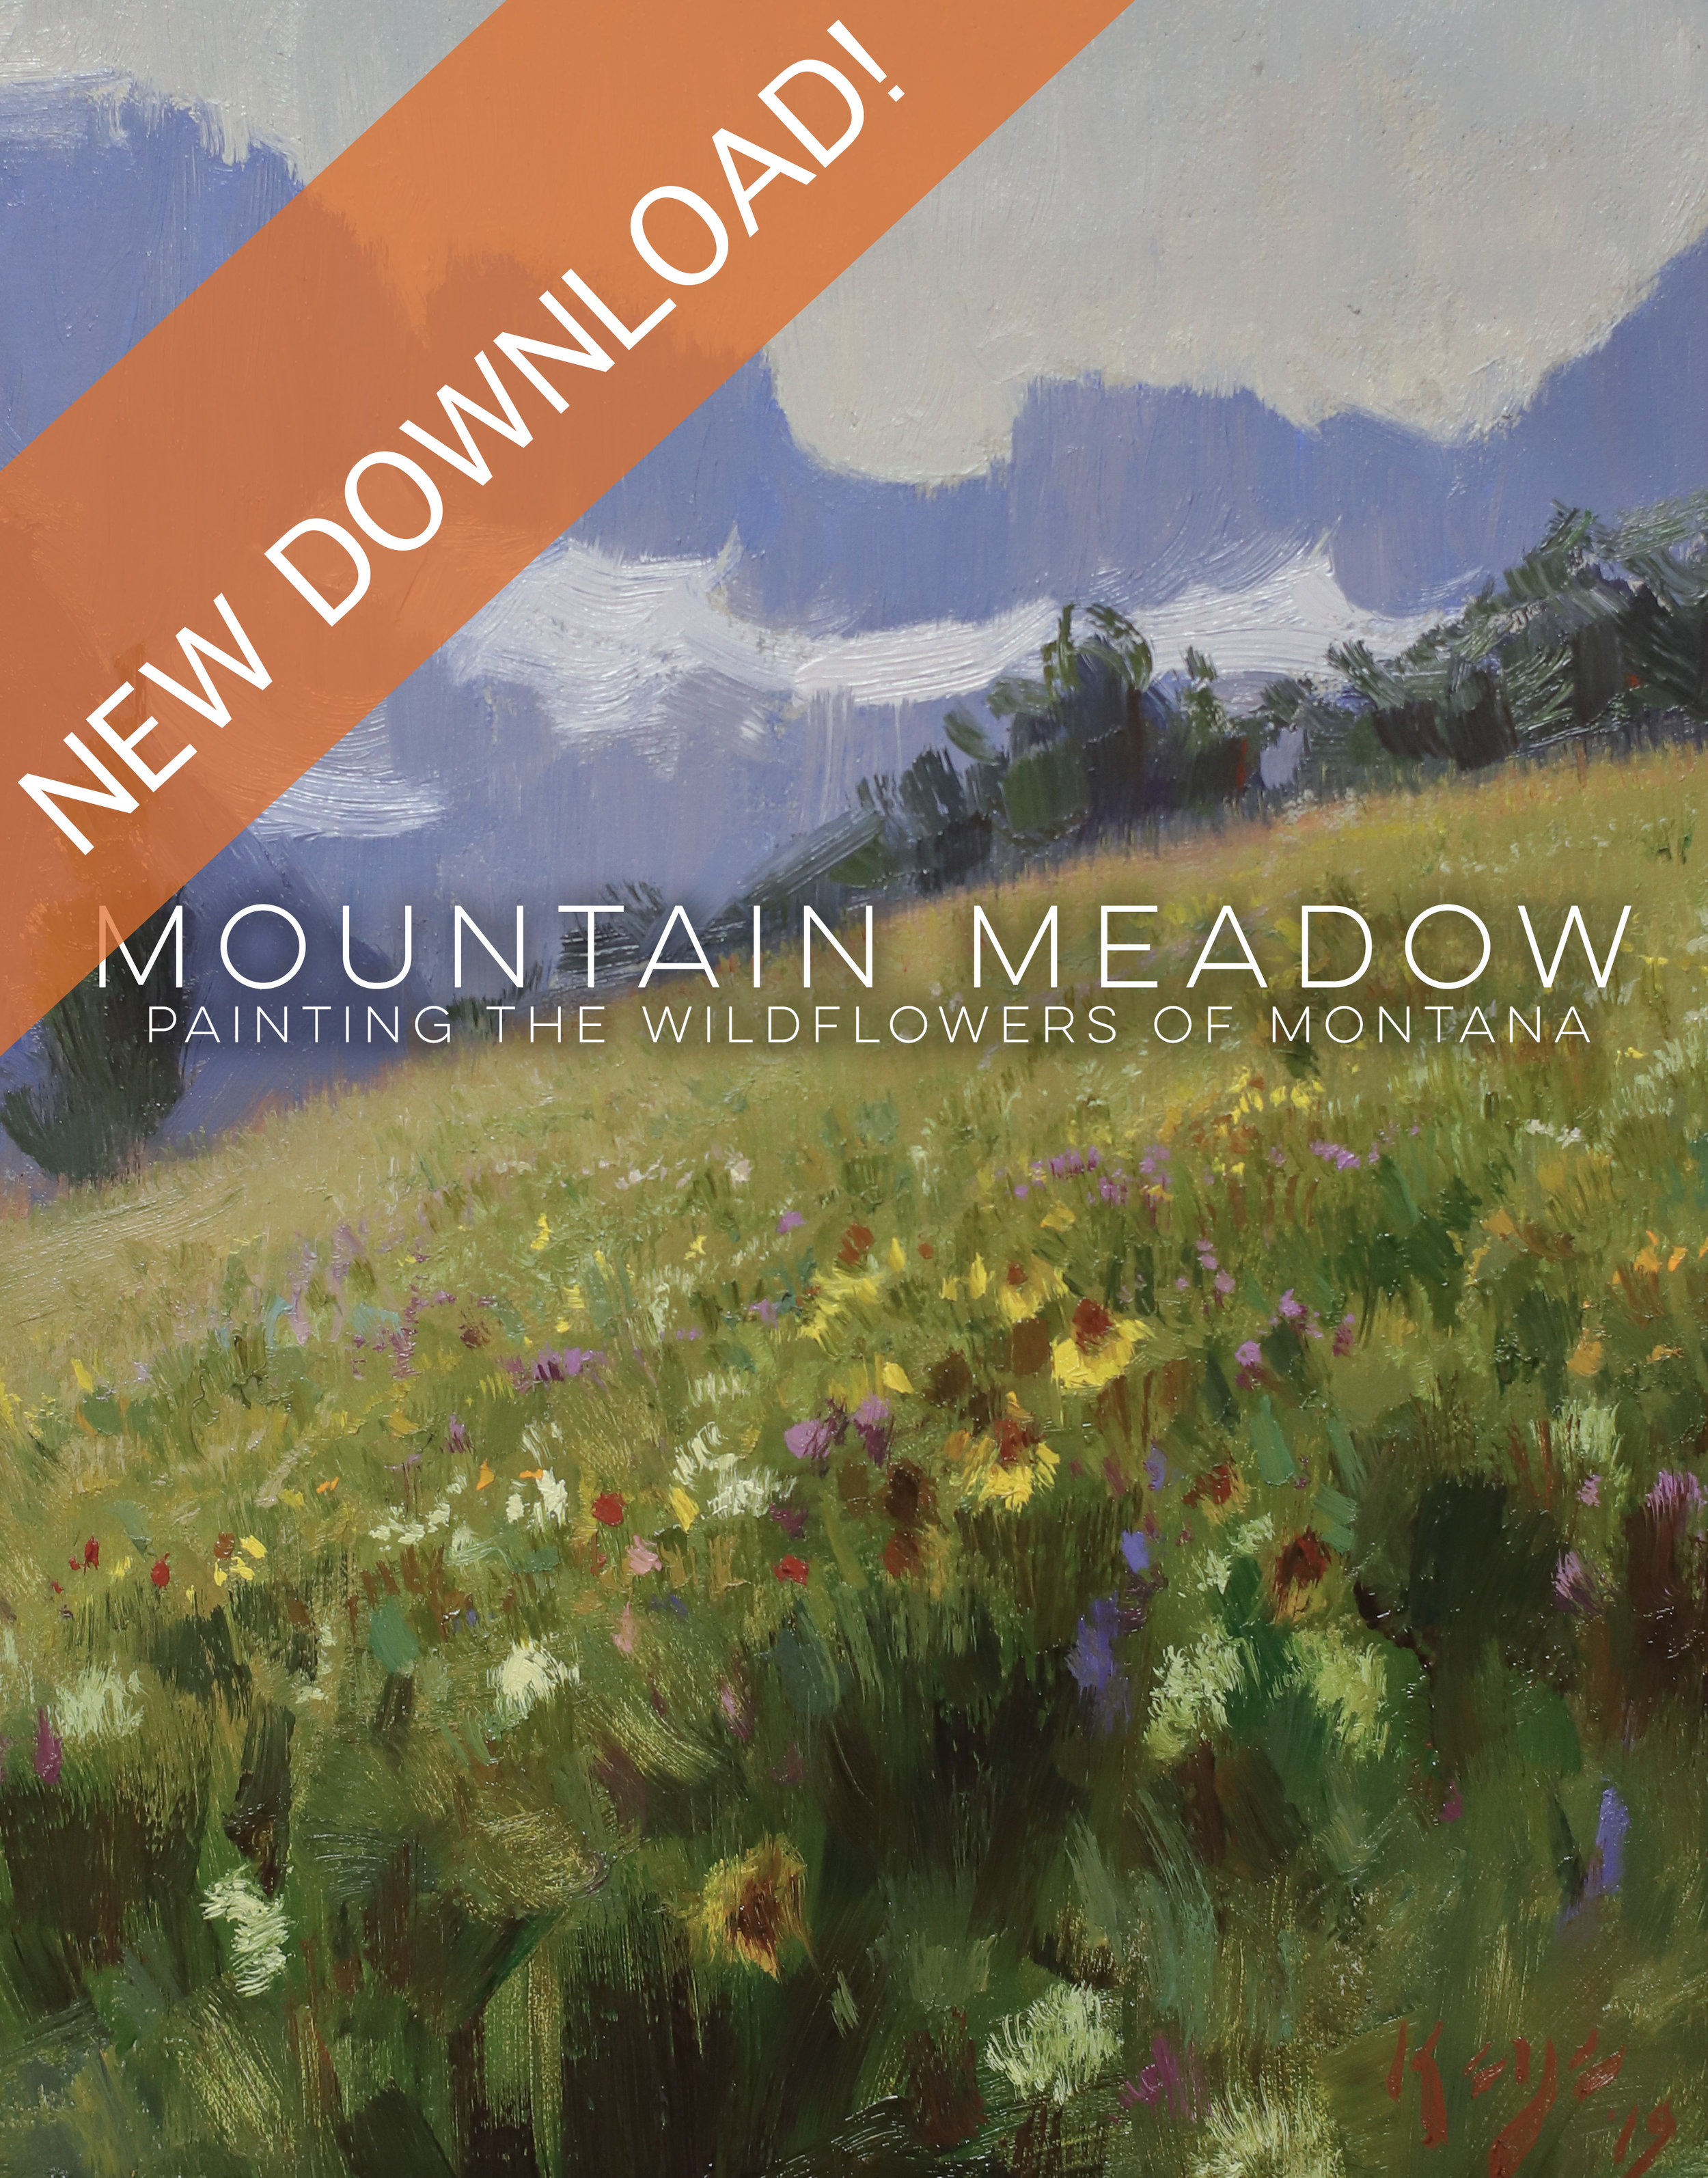 MOUNTAIN MEADOW - Painting the Wildflowers of MontanaDOWNLOAD HERE    Montana's Many Glacier mountain range is one of the most beautiful in the world, and particularly attractive to me are the meadows of wildflowers that grow but a short distance from them. Not being able to film inside the national park (it's not legal to film commercially within a federal park), I've decided to paint the scene using my plein-air studies and a few photographs.    In this informative landscape video, we'll cover everything from color and value, to using reference studies to create a